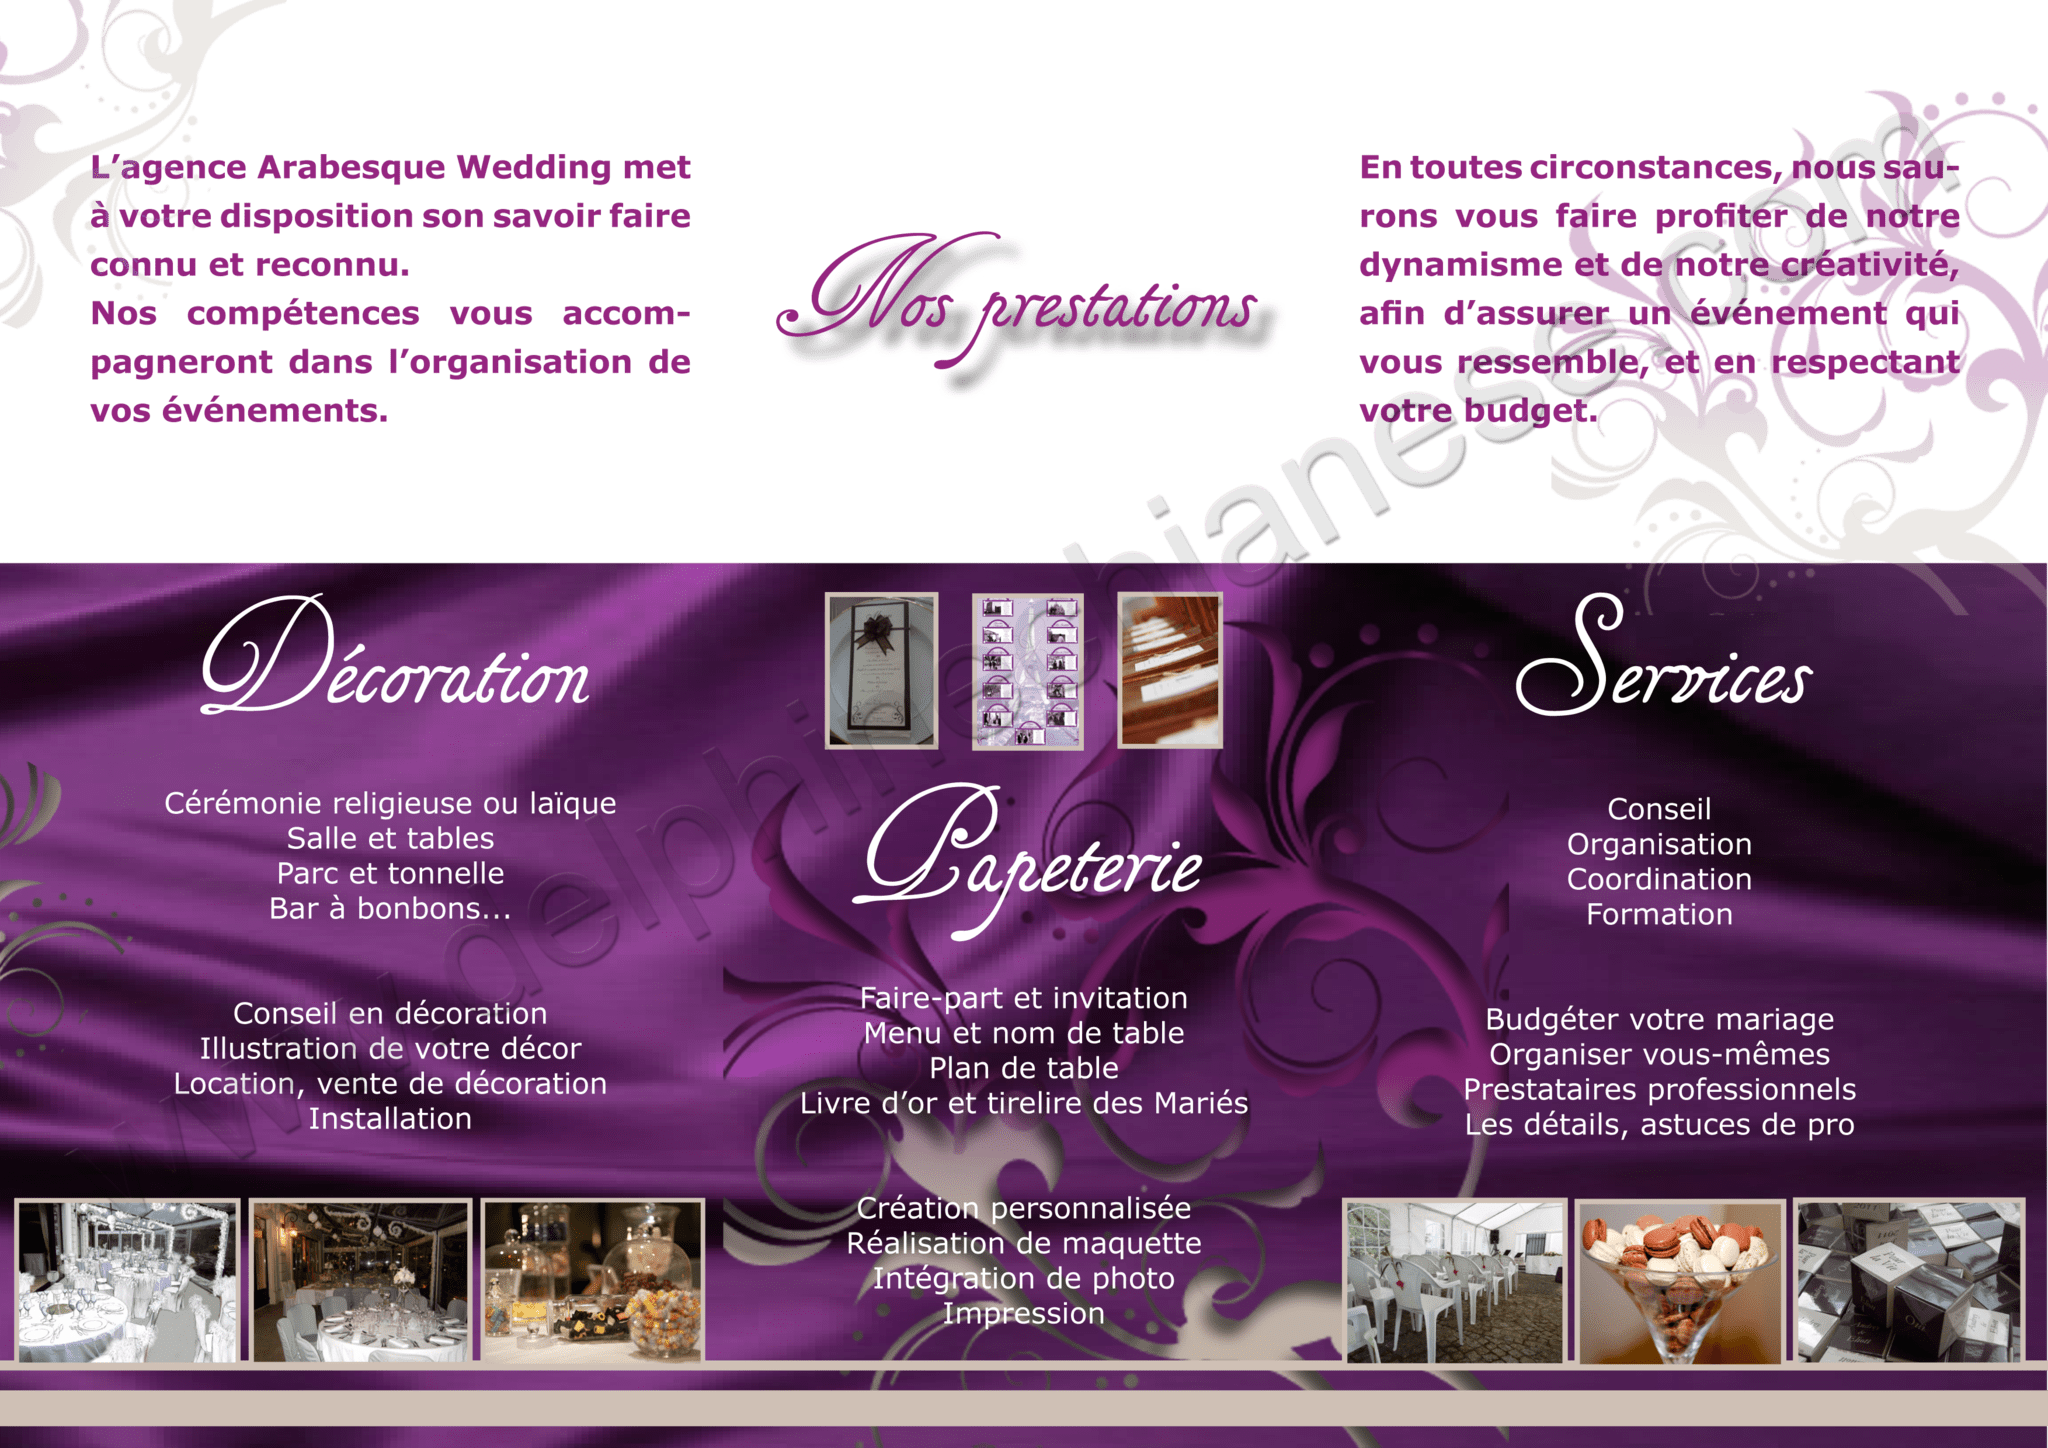 Agence De Decoration Evenementielle Agence Evenementielle Quotarabesque Wedding Quot 2012